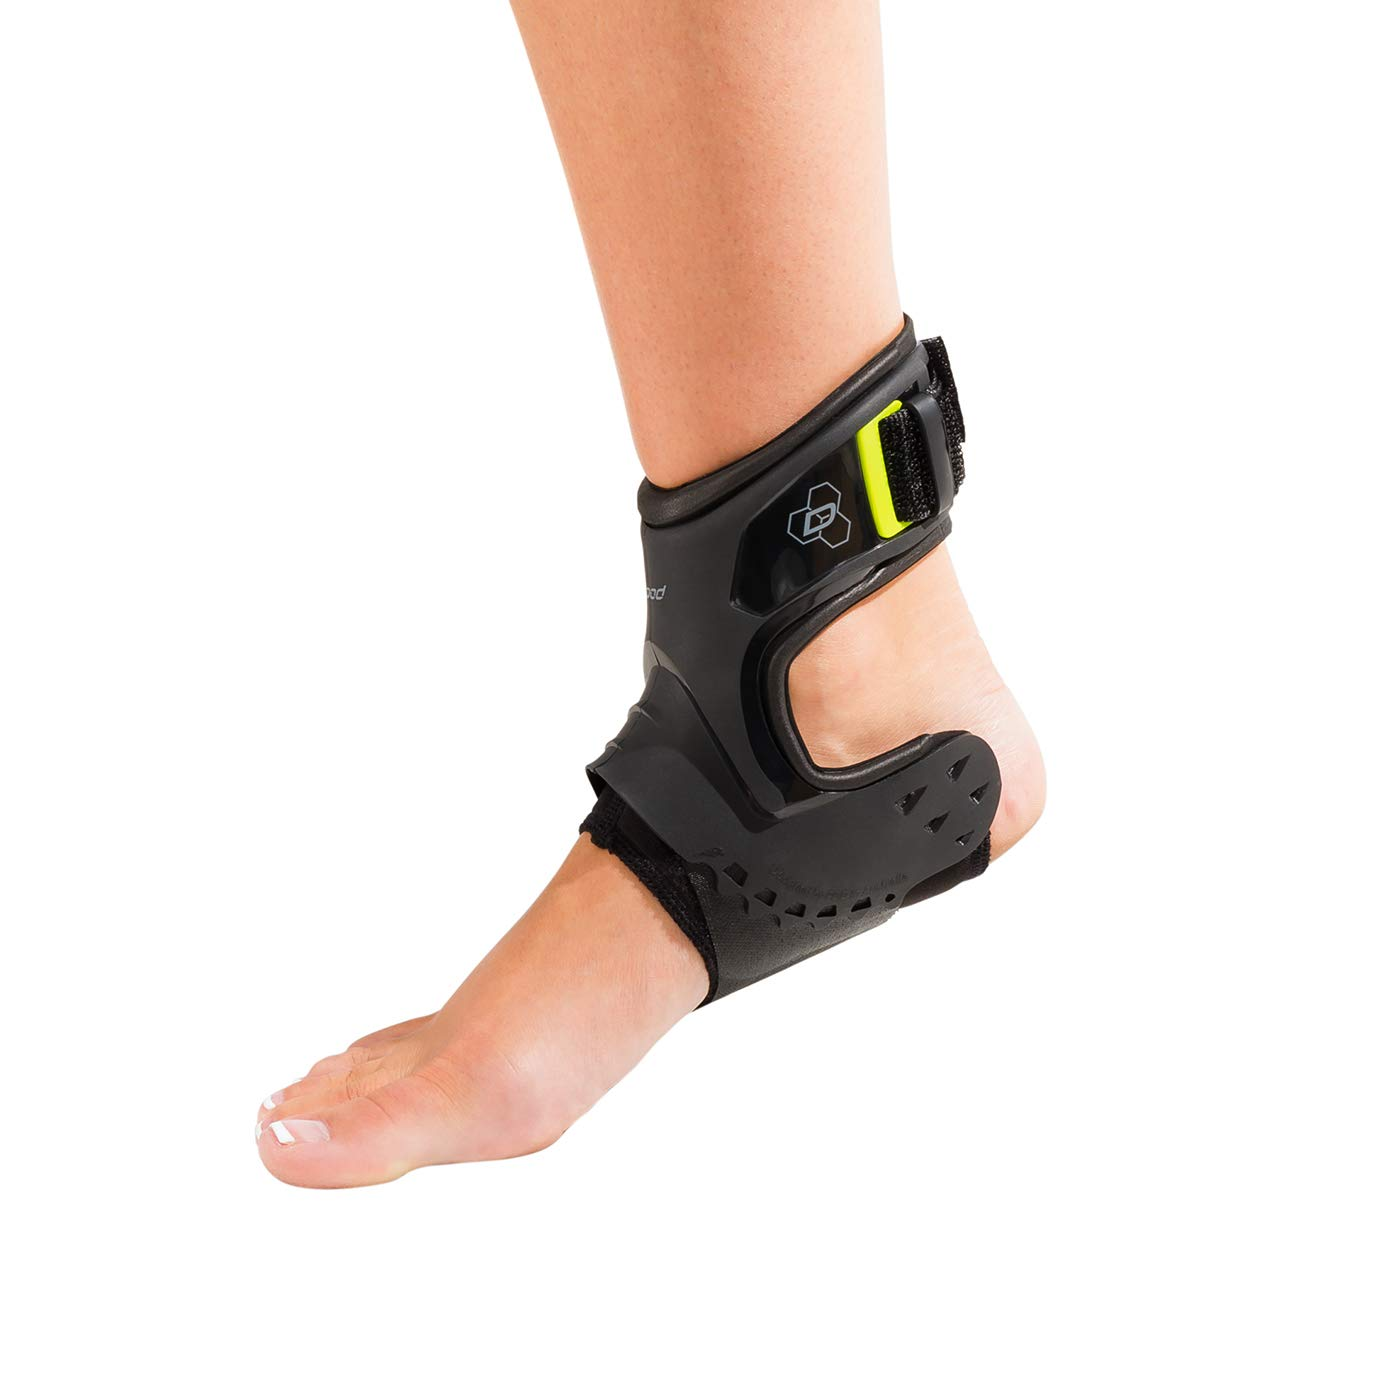 DonJoy Performance POD Ankle Brace Pair - Right and Left - Black - Small - Value Bundle by DonJoy Performance (Image #4)